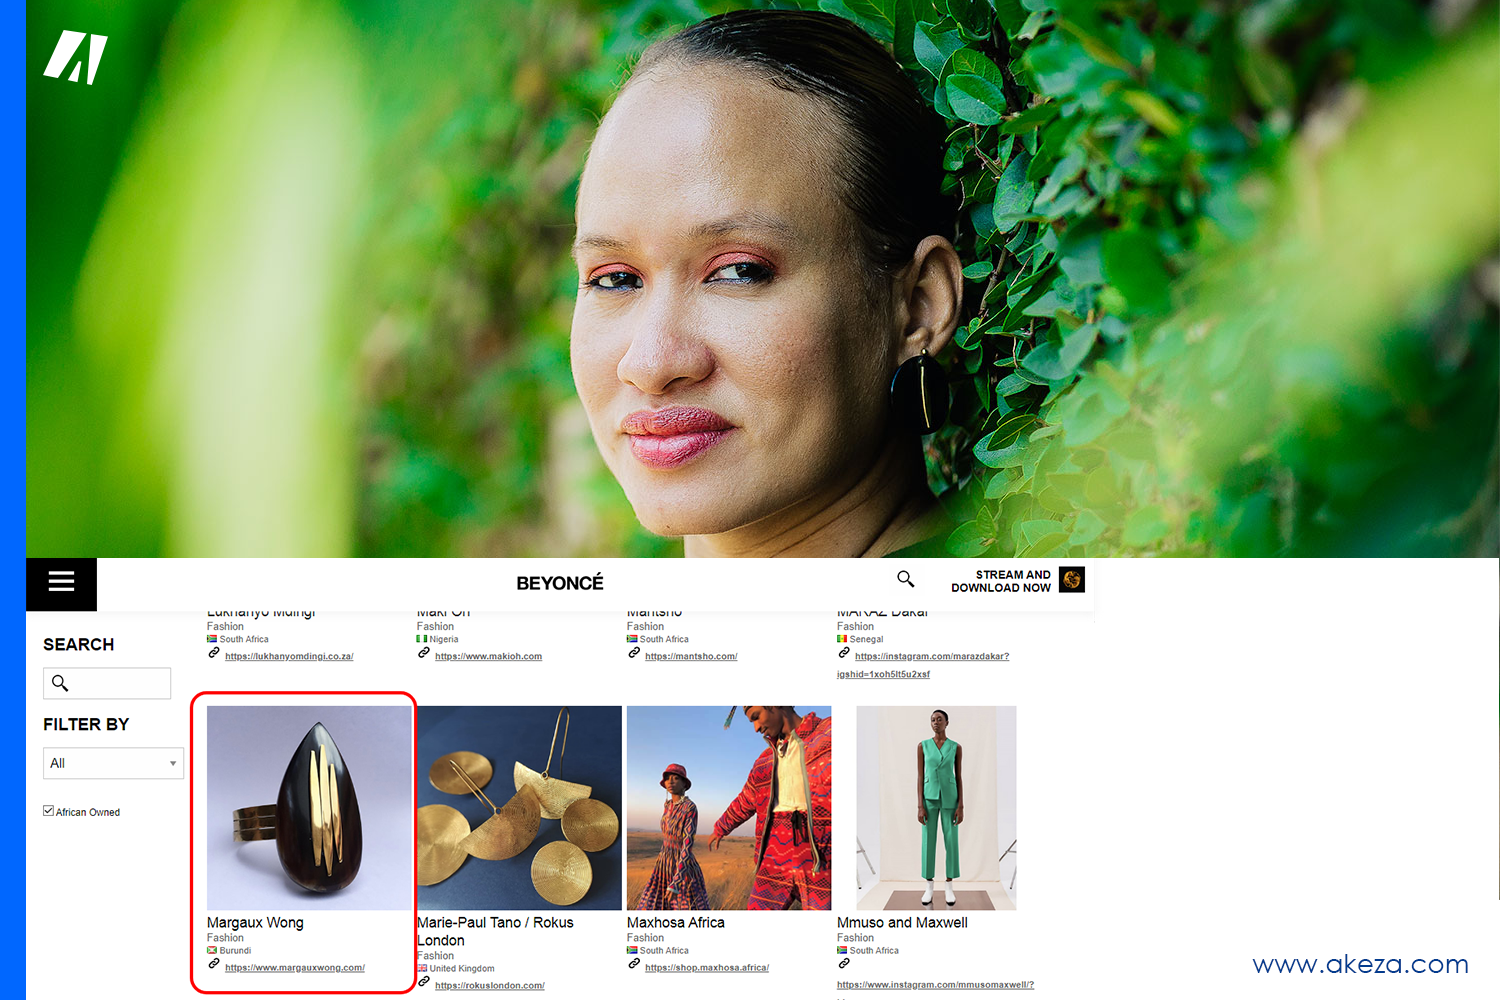 Margaux Wong reacts to her brand being featured on Beyonce's Website